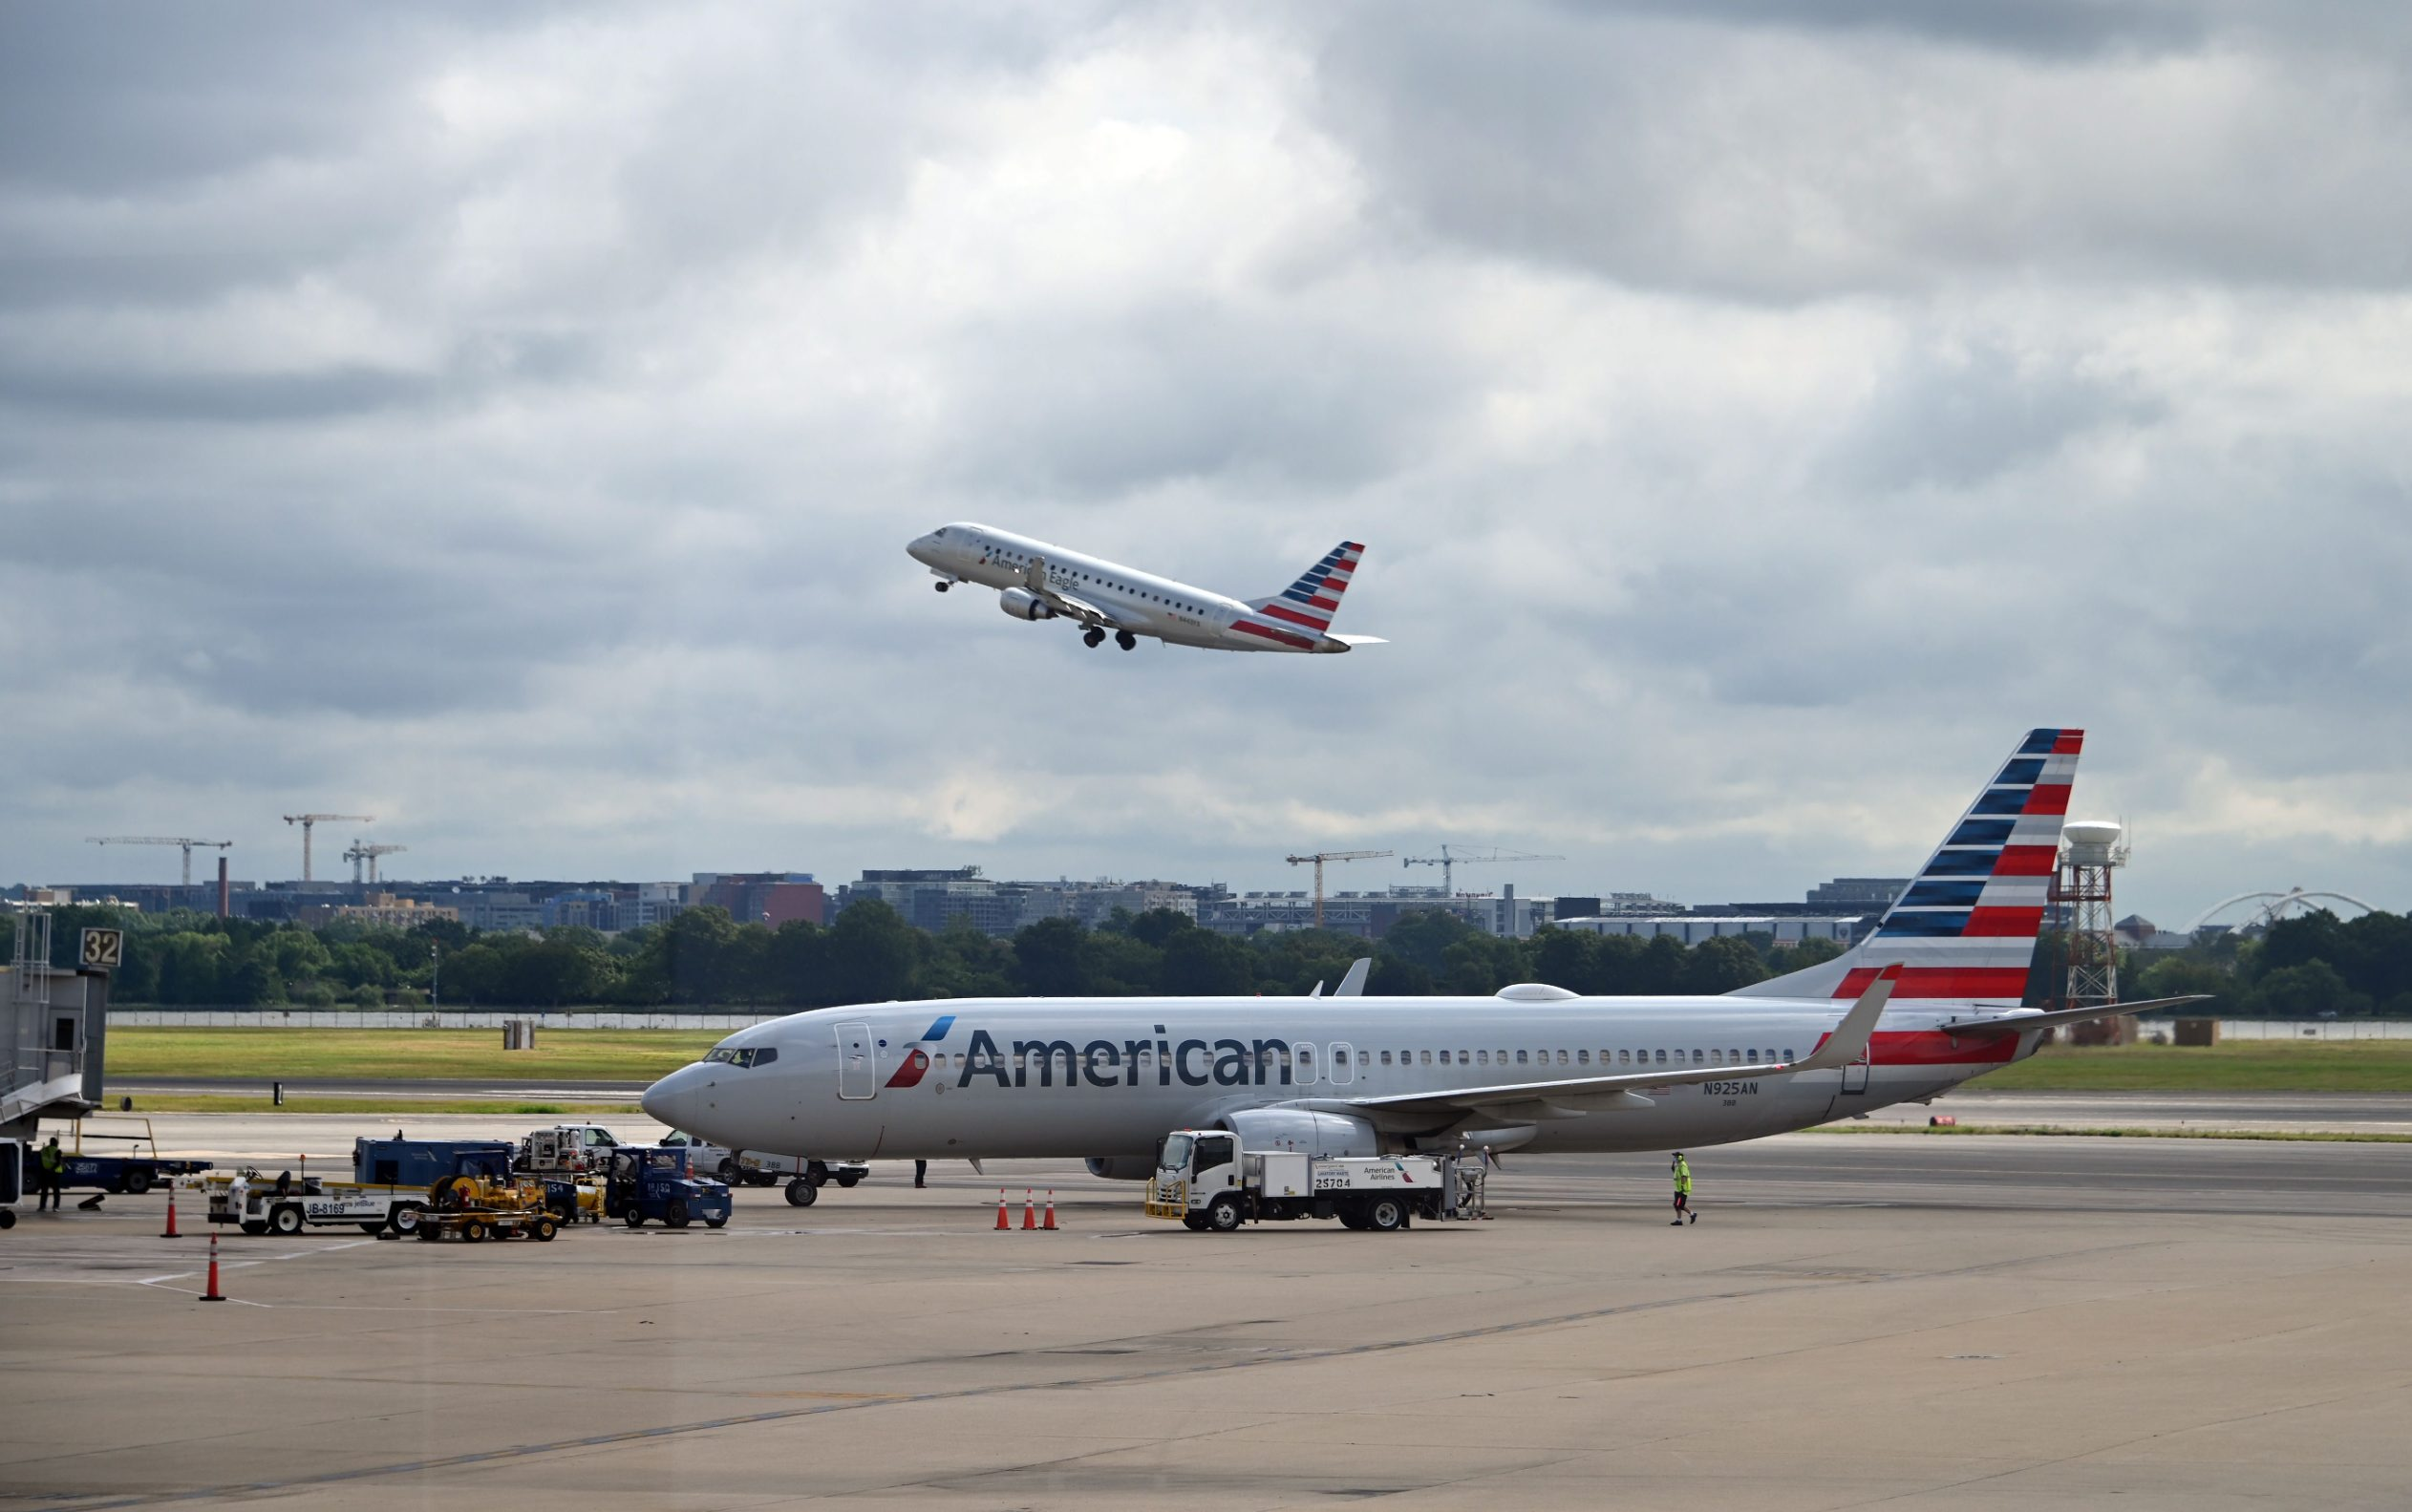 (FILES) In this file photo an American Eagle plane takes off while an American Airlines plane approaches a gate at Ronald Reagan Washington National Airport on July 10, 2020, in Arlington, Virginia, during the coronavirus pandemic. - American Airlines said on August 25, 2020 it will lay off 19,000 workers on October 1, in addition to thousands more who left the company or agreed to voluntary furloughs, unless Congress offers more aid.